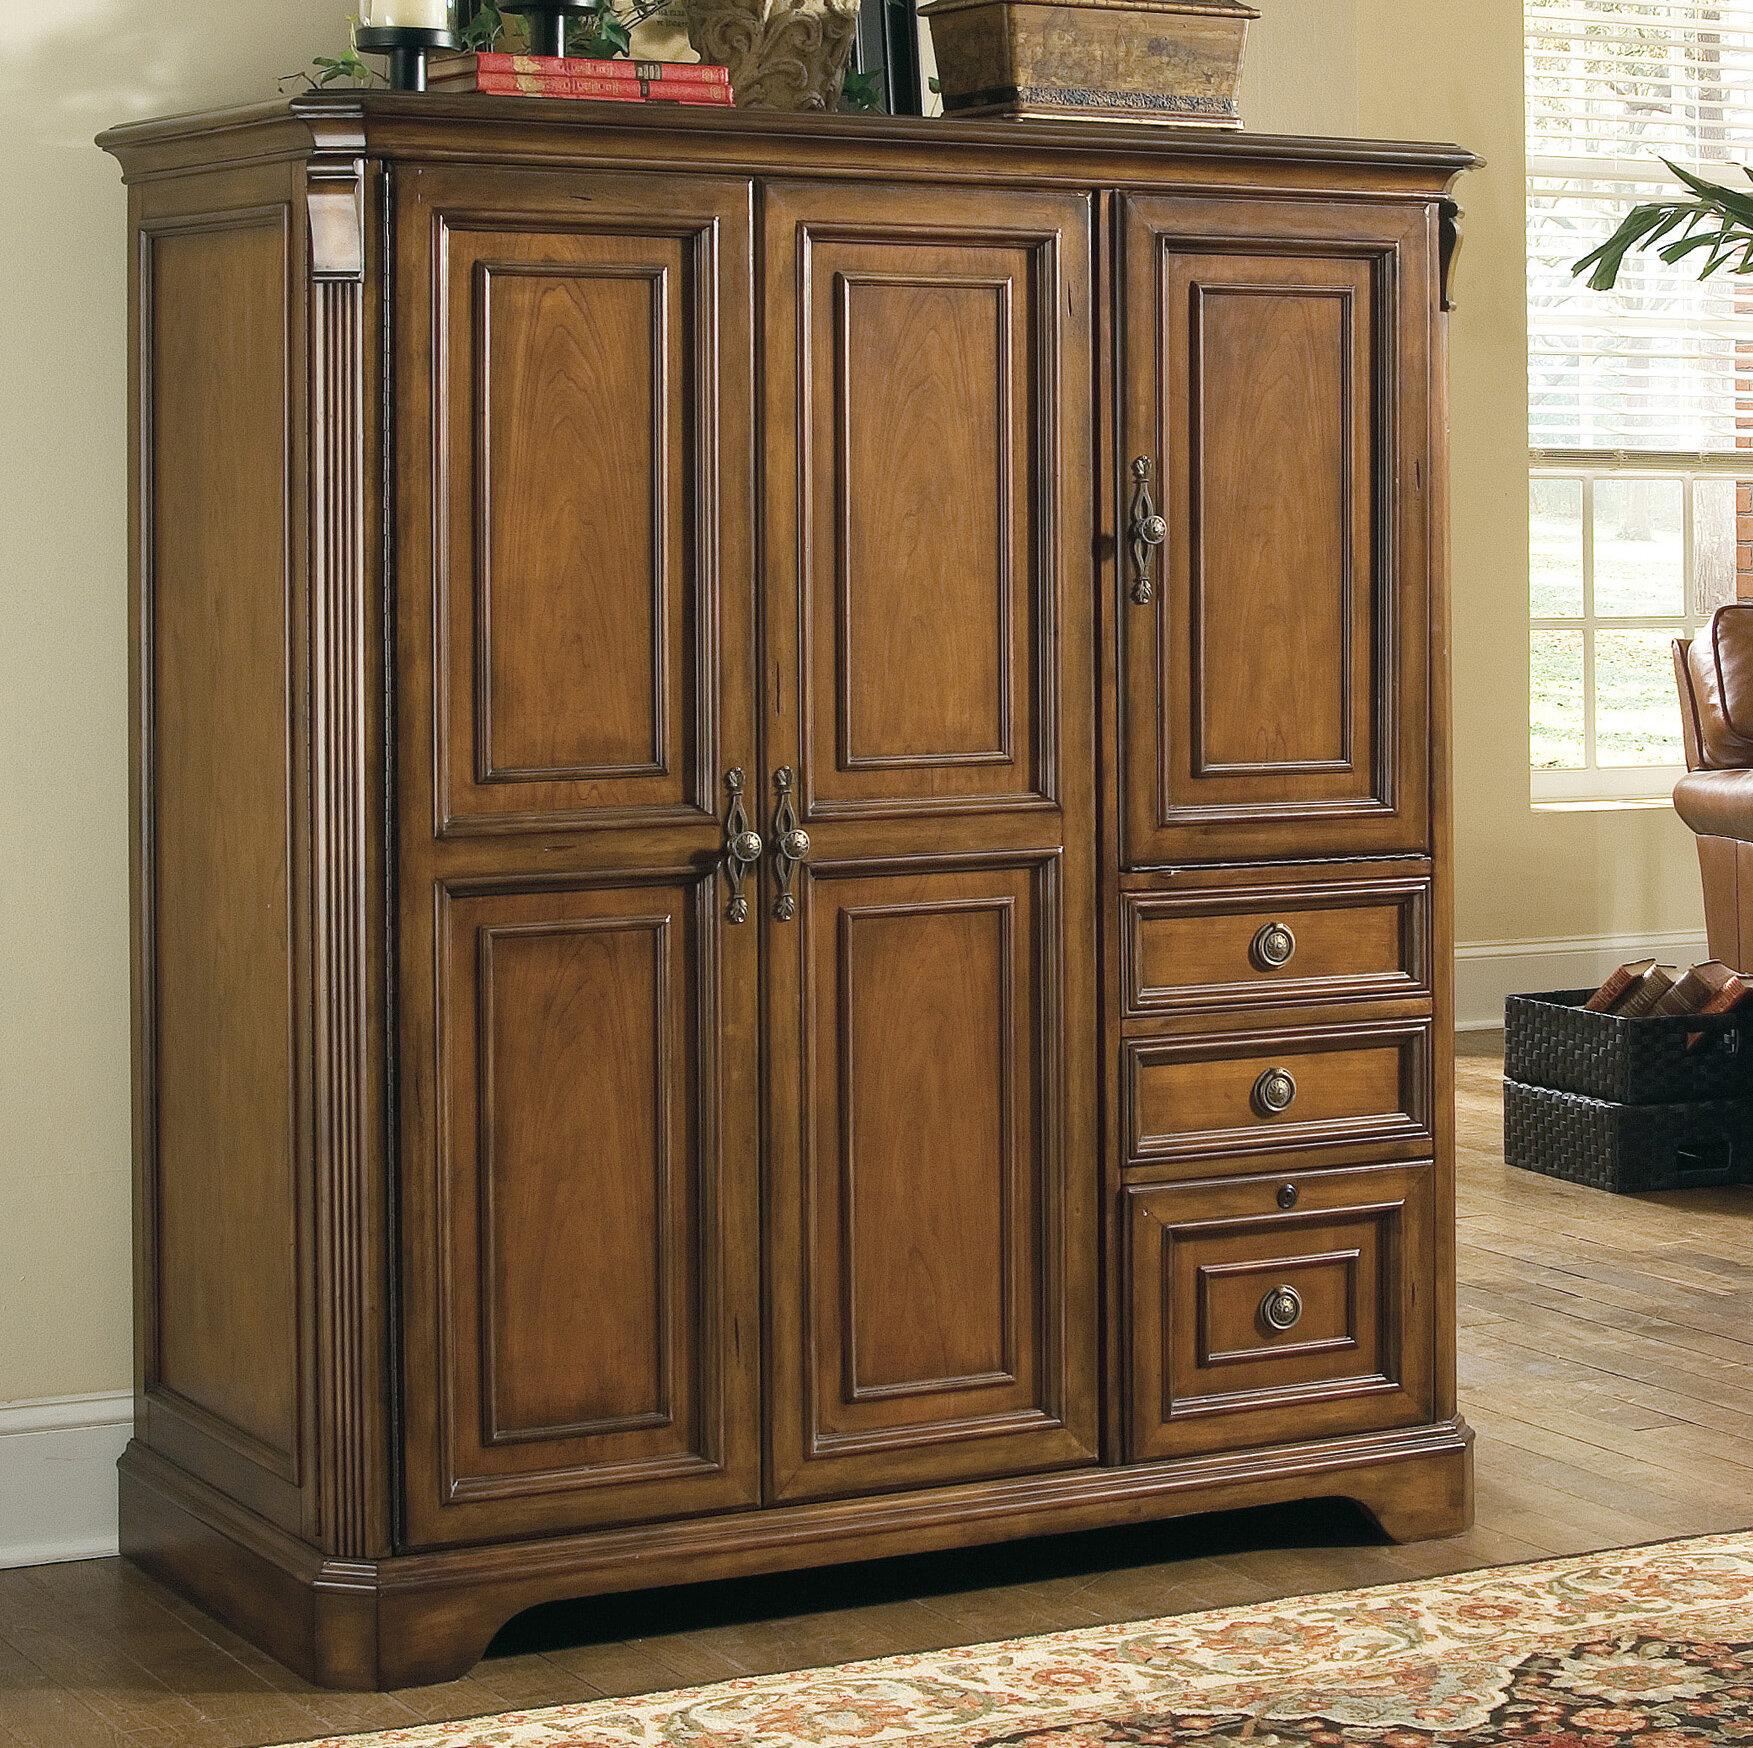 Hooker Furniture Brookhave Armoire Desk Reviews Wayfair